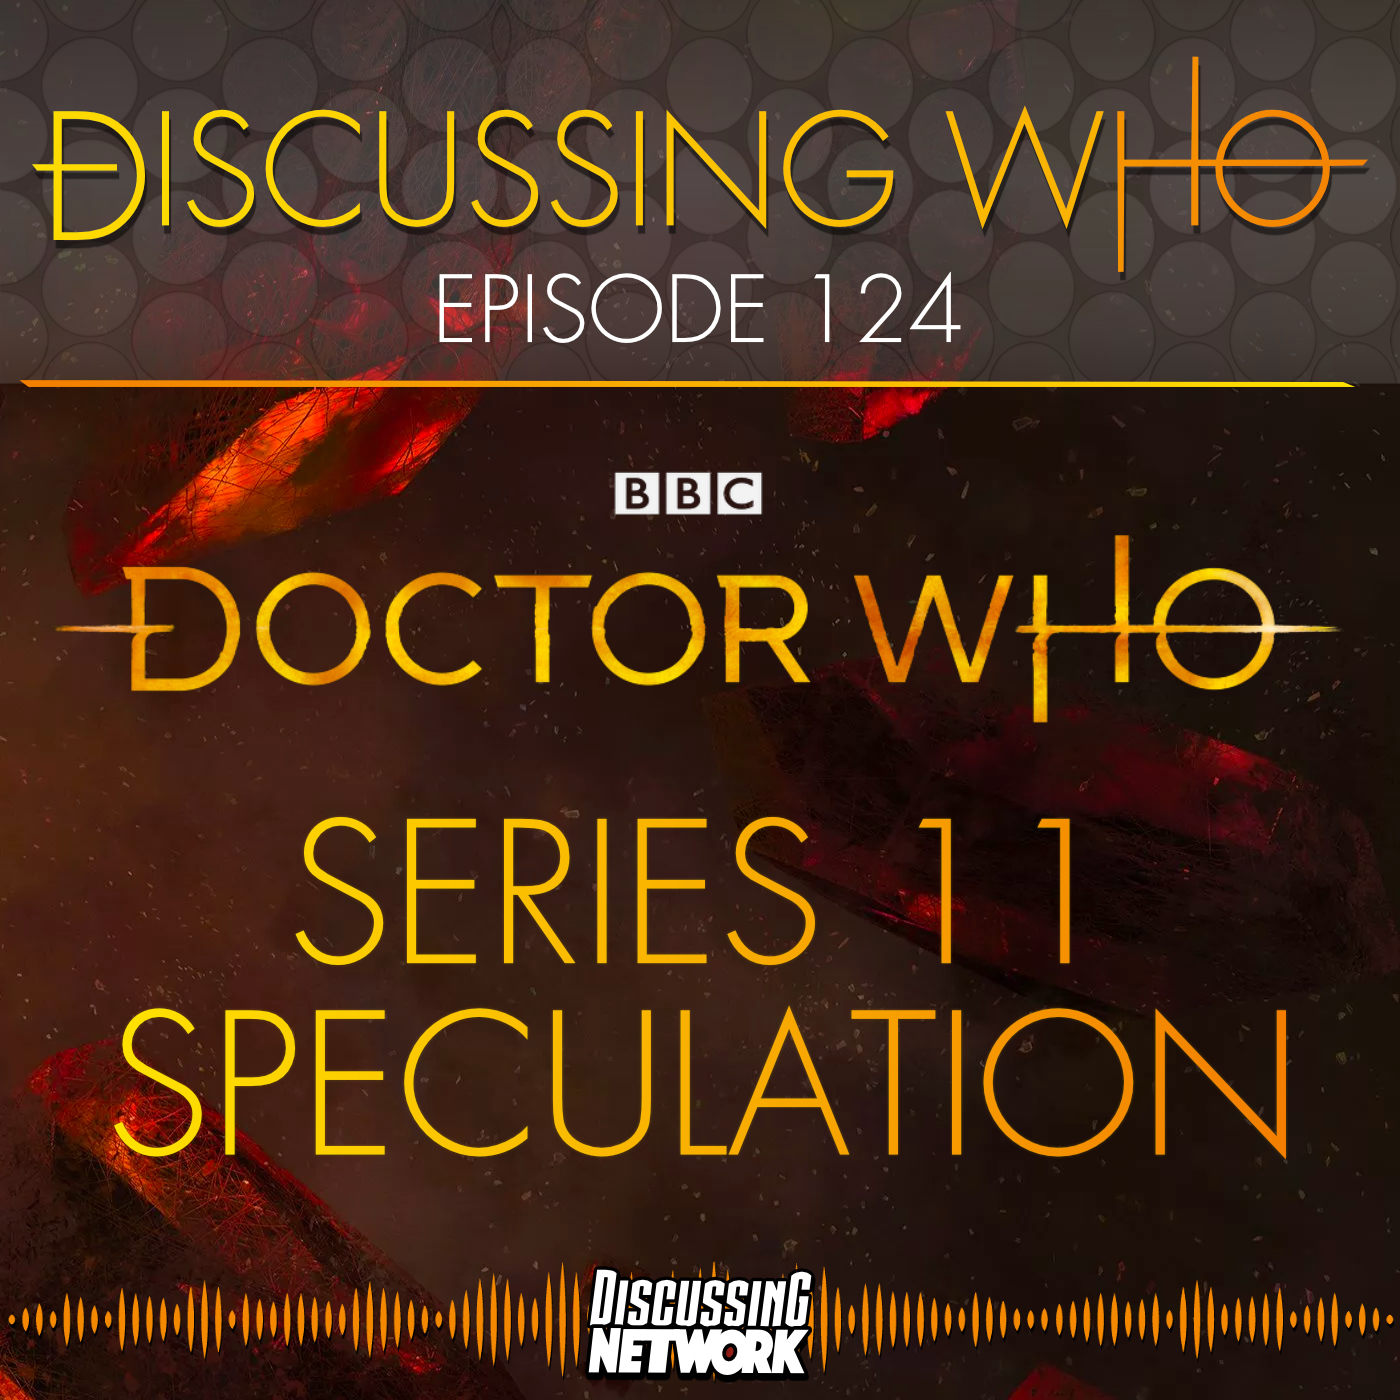 Discussing Who Episode 124 Speculation of Doctor Who Series 11